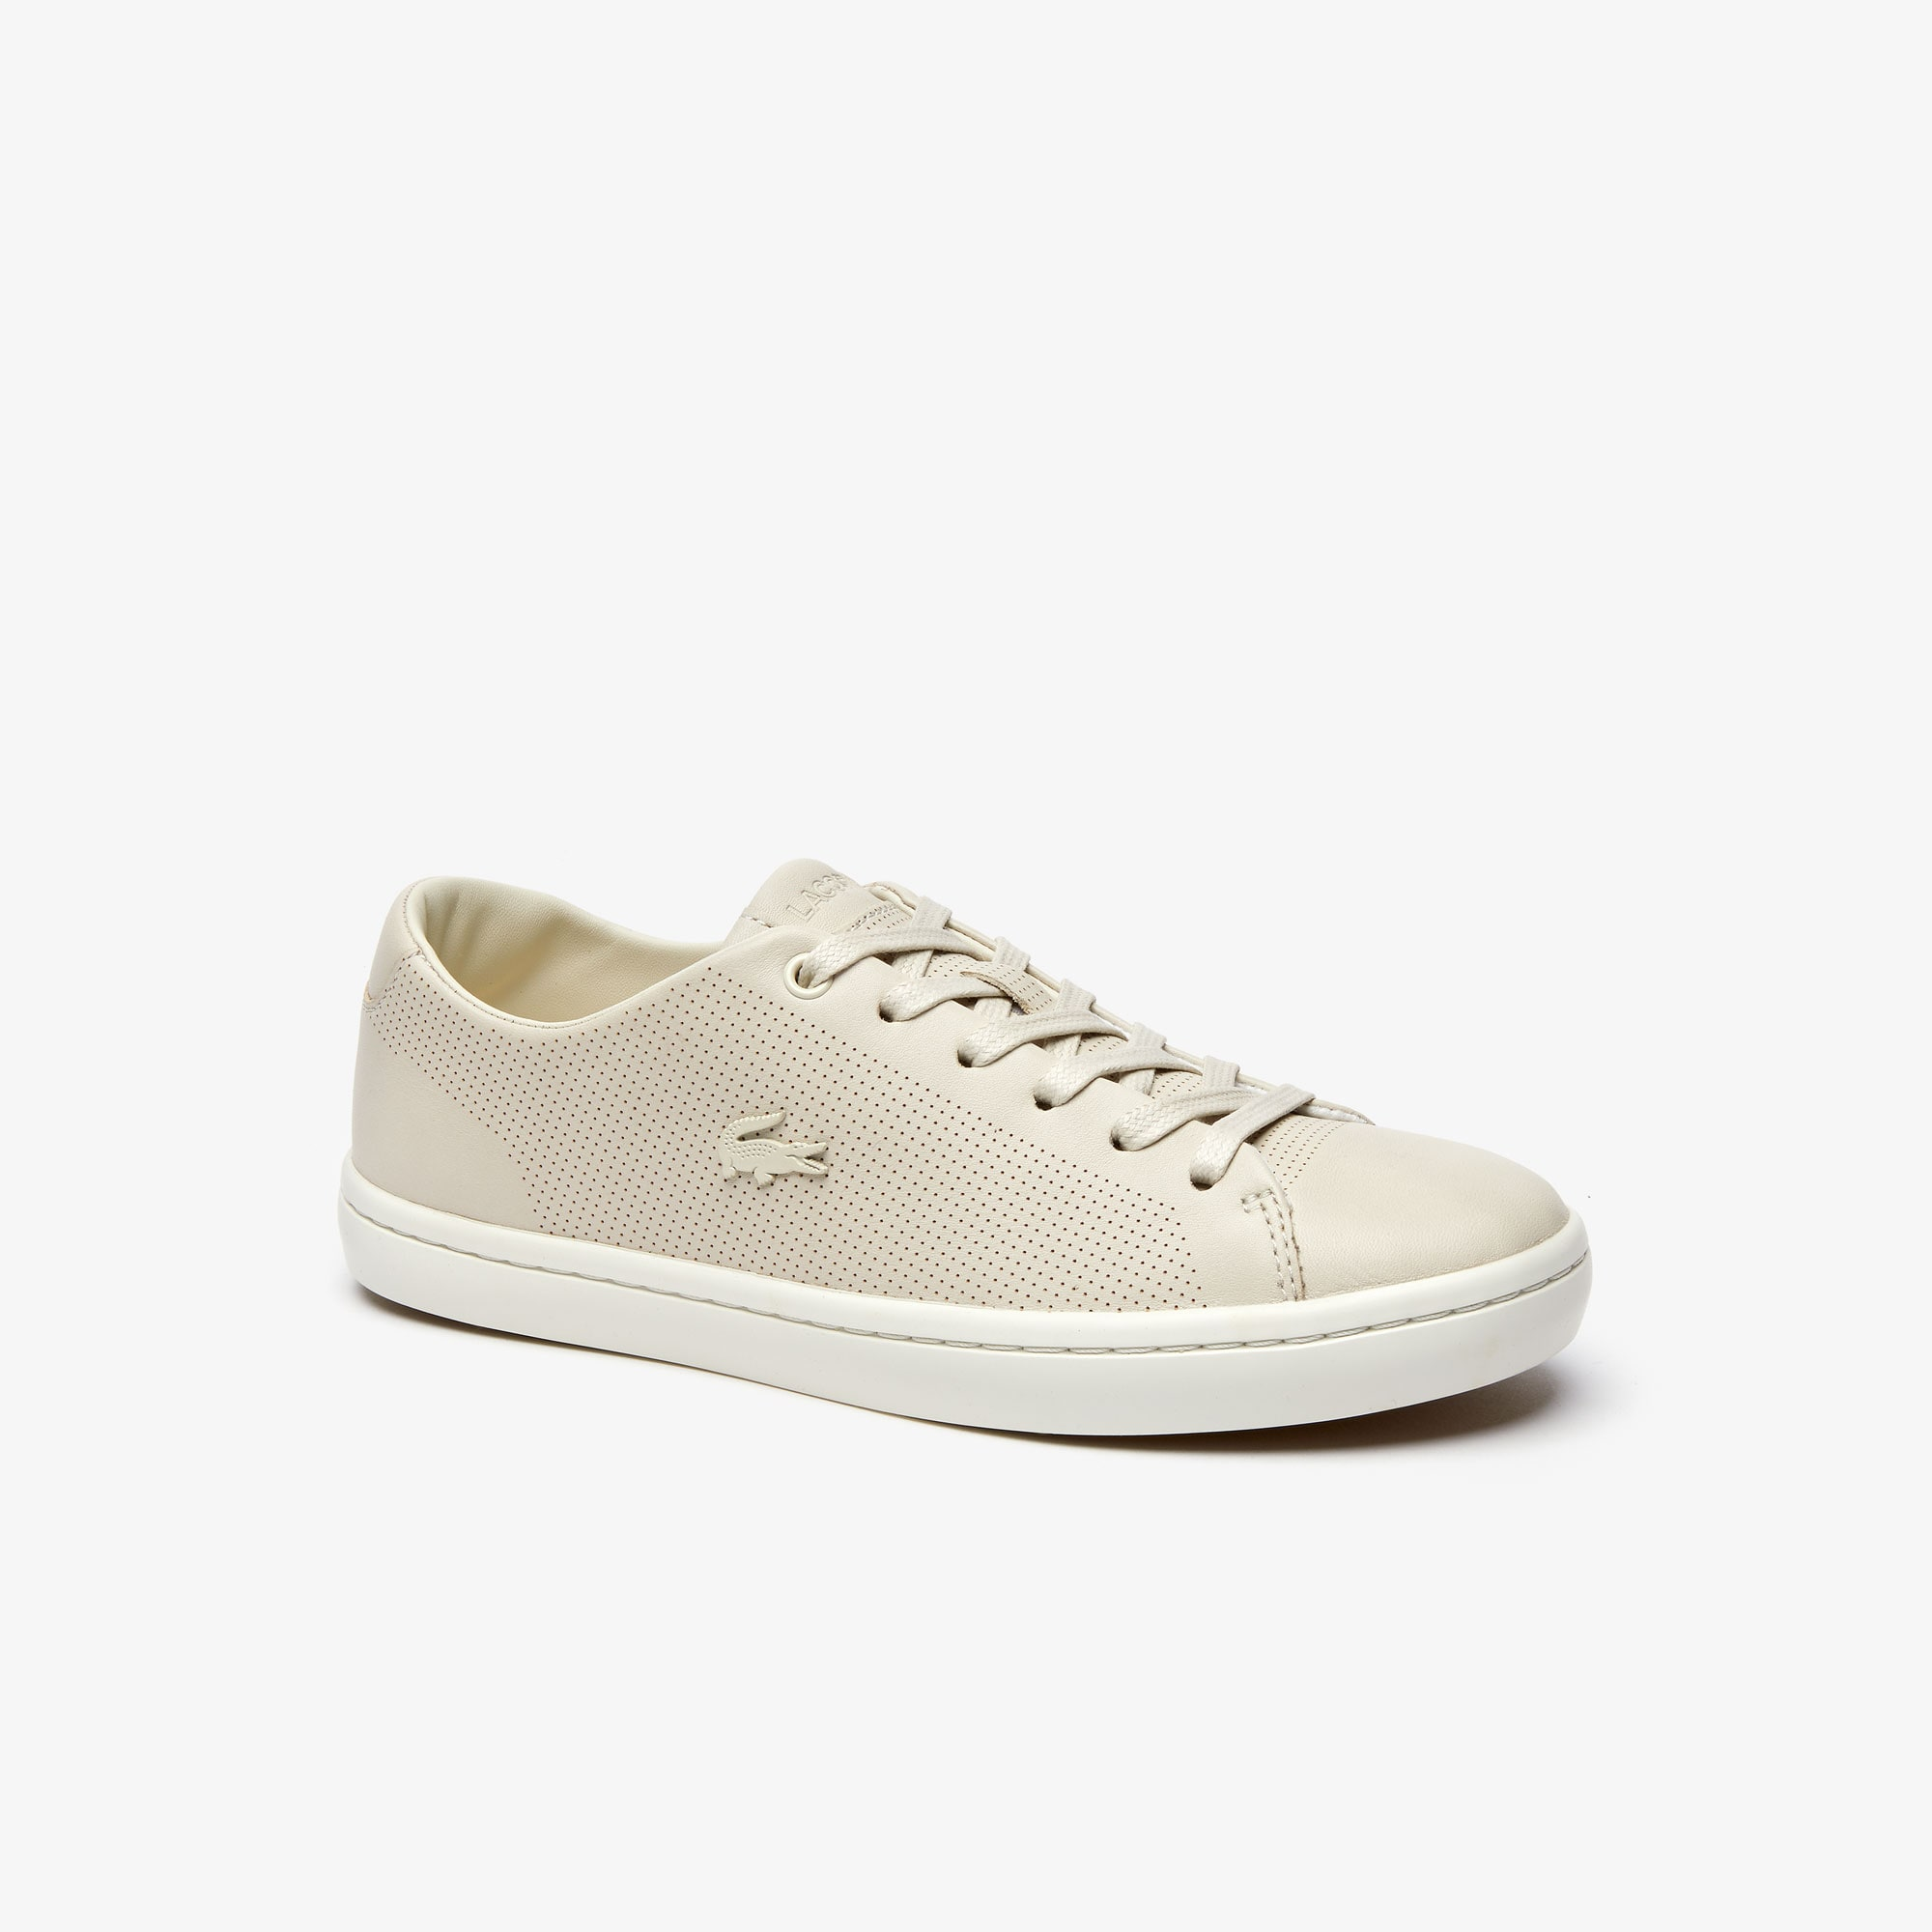 Showcourt 2.0 Leather Sneakers